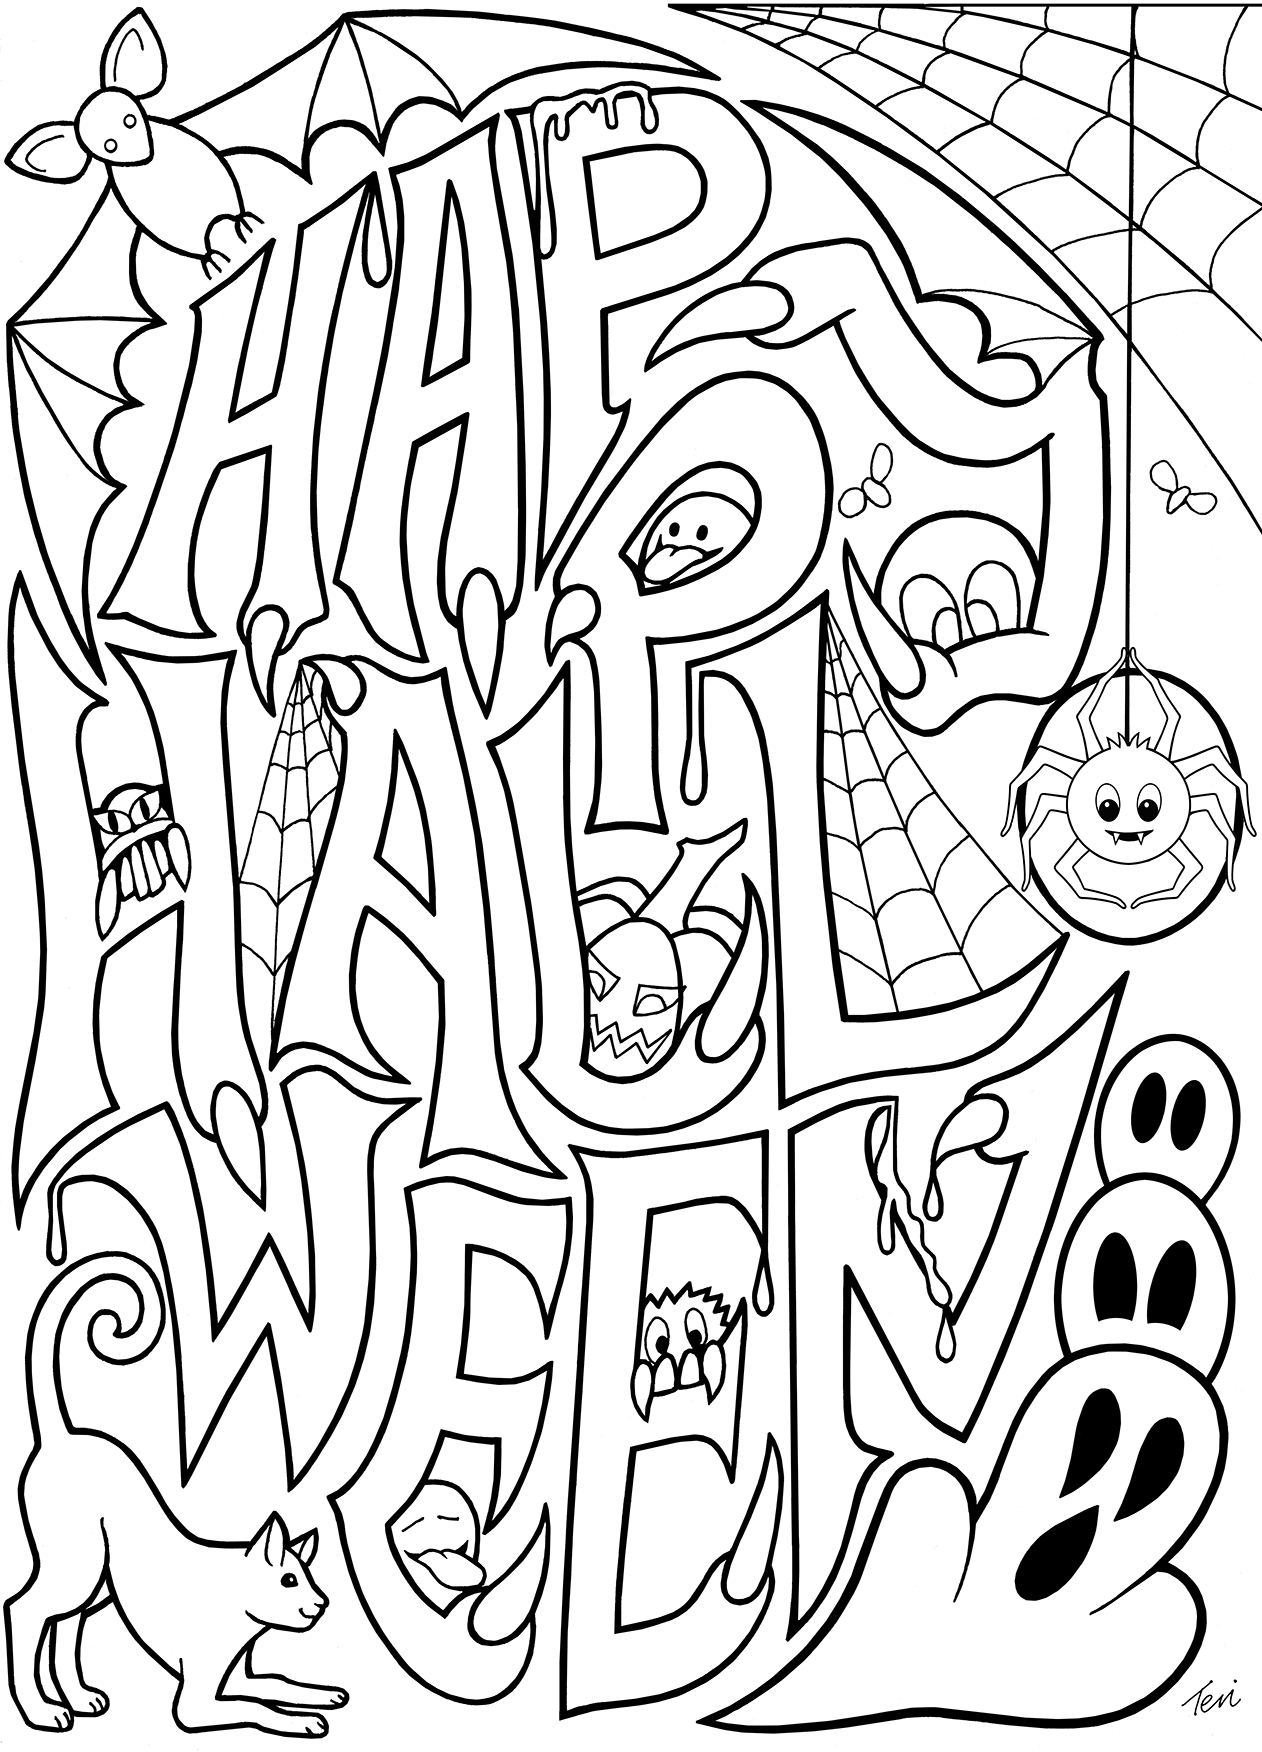 halloween color pages free halloween coloring pages for kids or for the kid in you color pages halloween